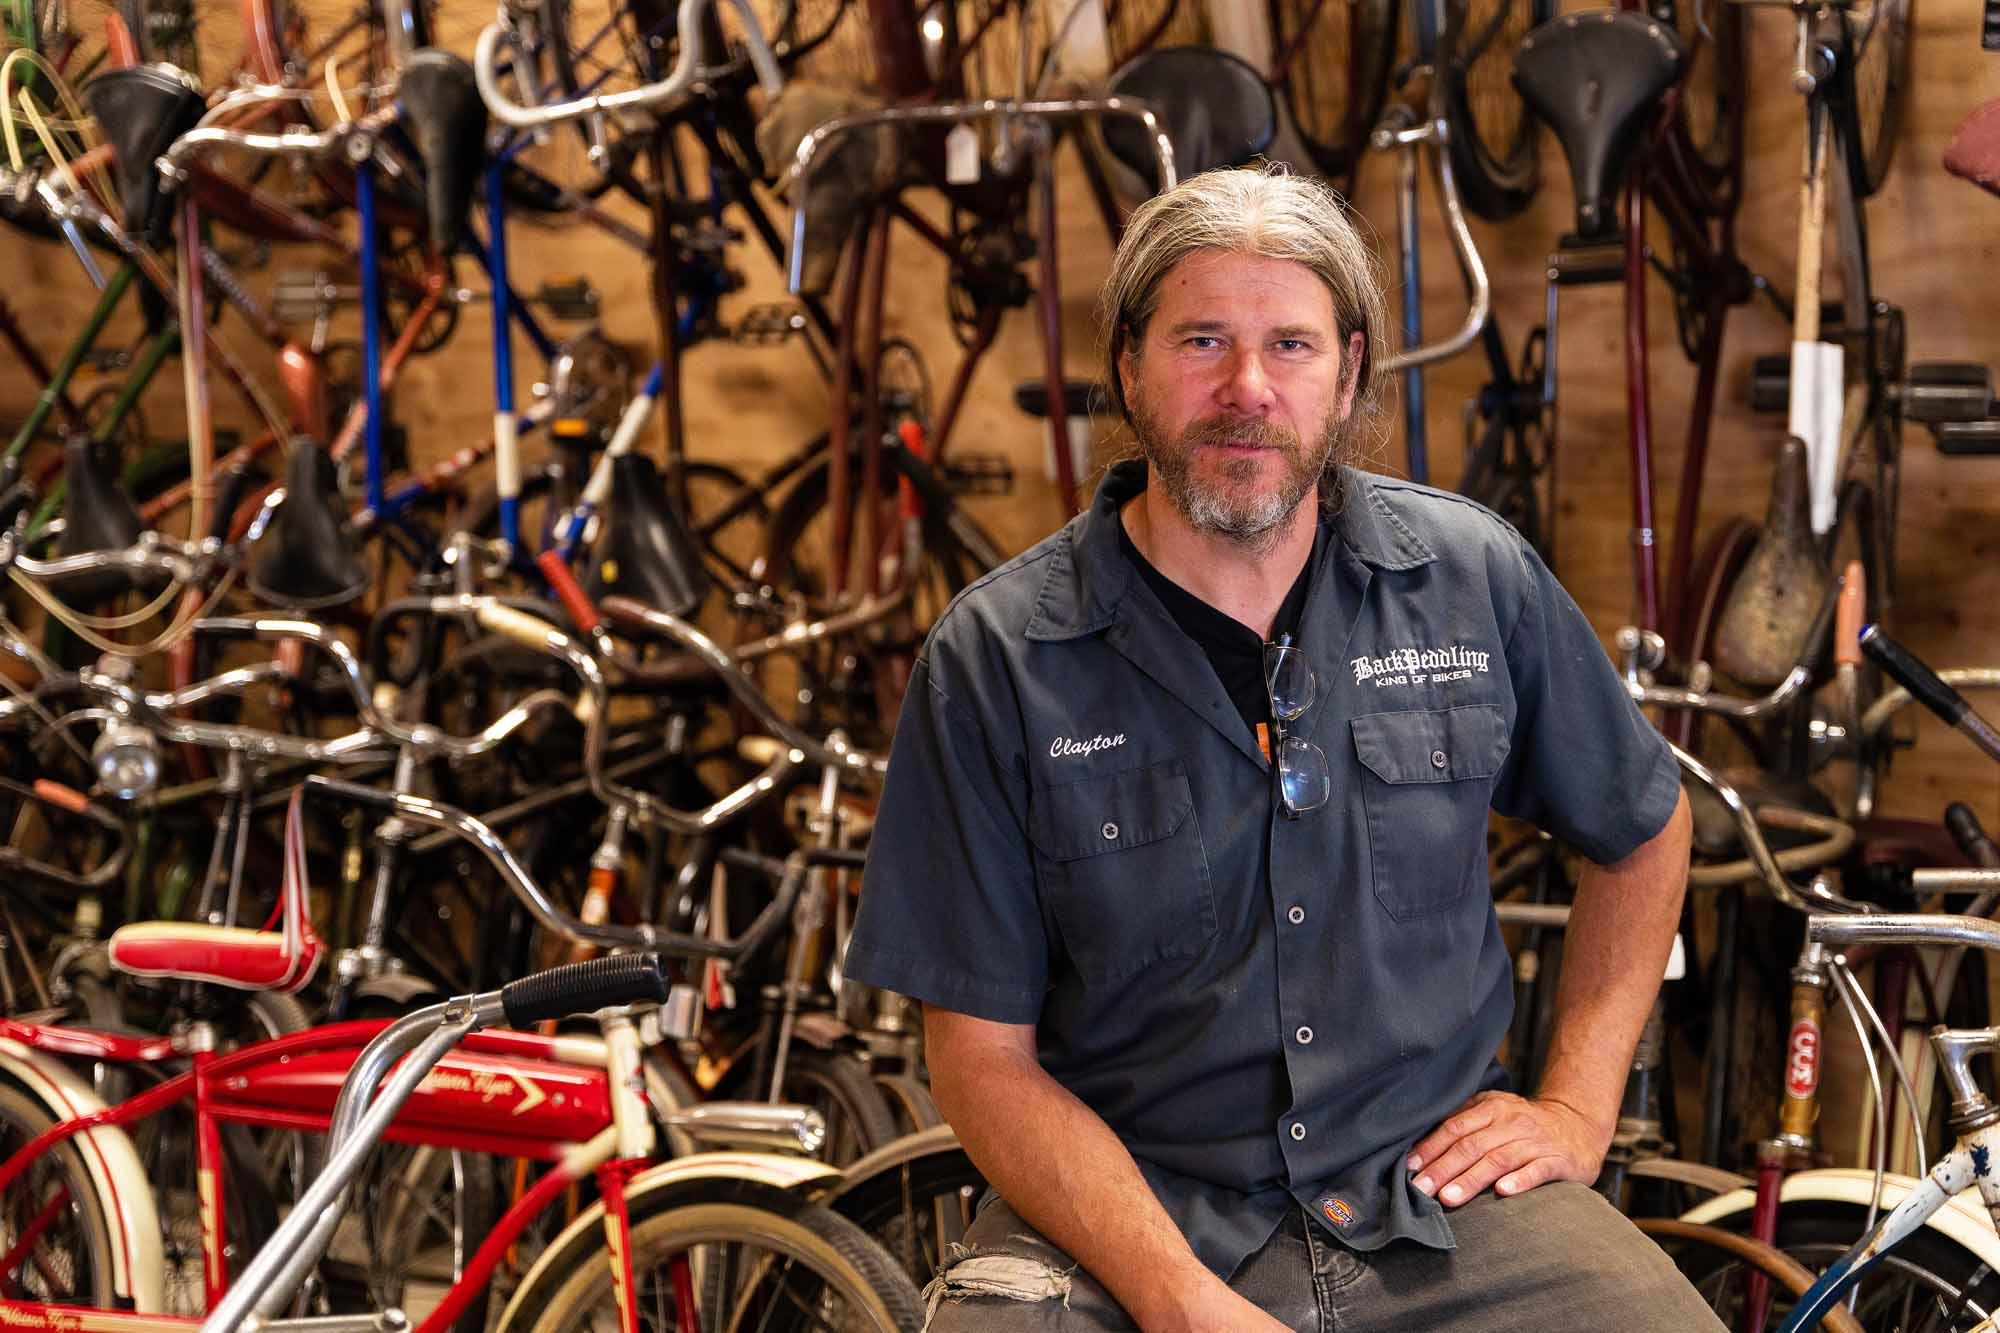 The-King-of-Bikes-The-Story-of-an-Obsession-Clayton-Foxall-Colin-Field-photo